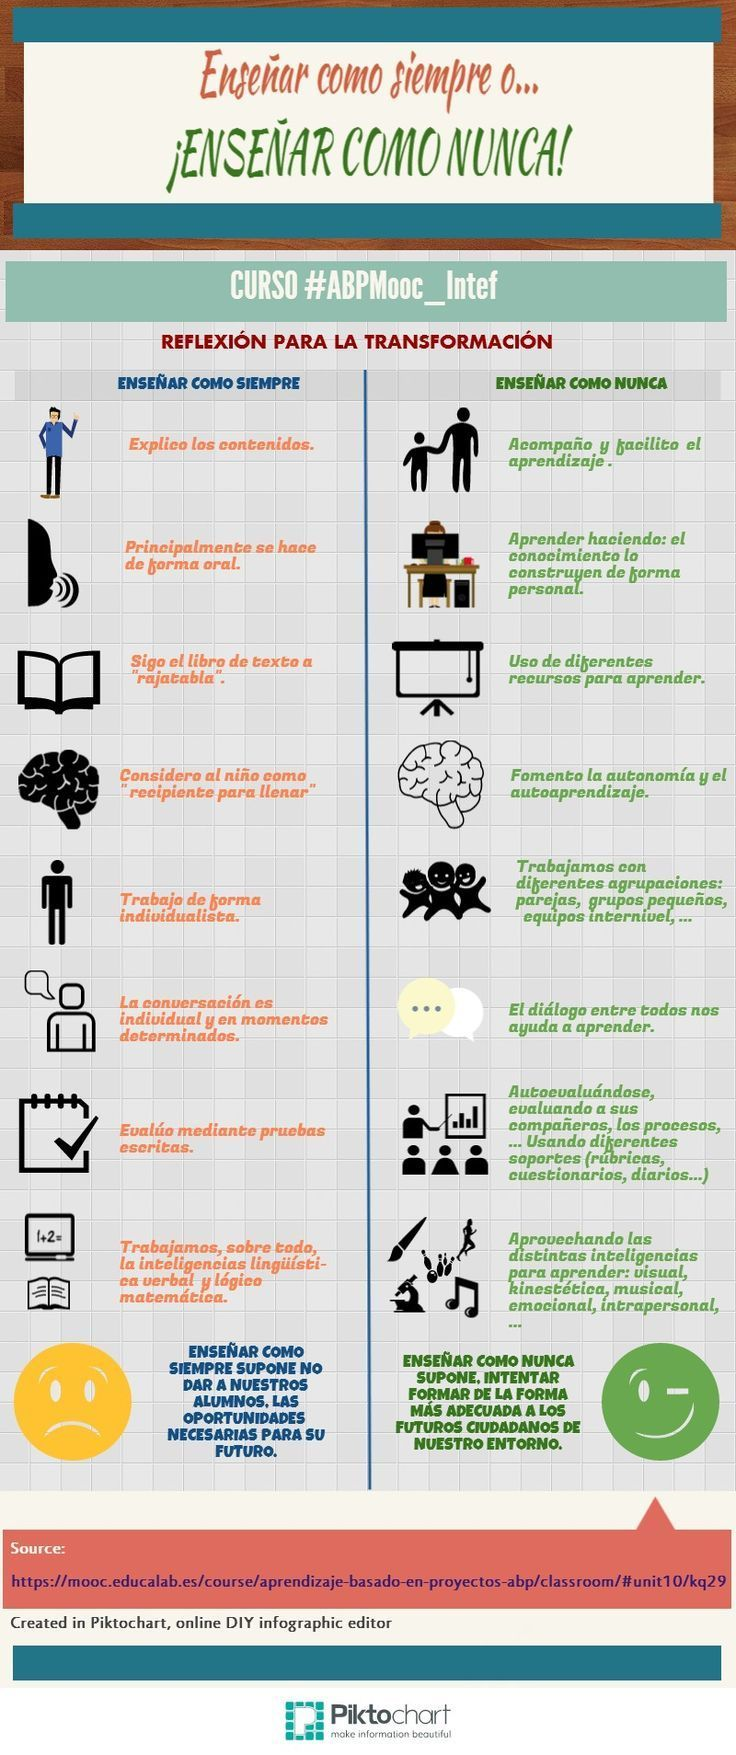 EnseñarComoSiempreVsEnseñarComoNunca-Infografía-BlogGesvin